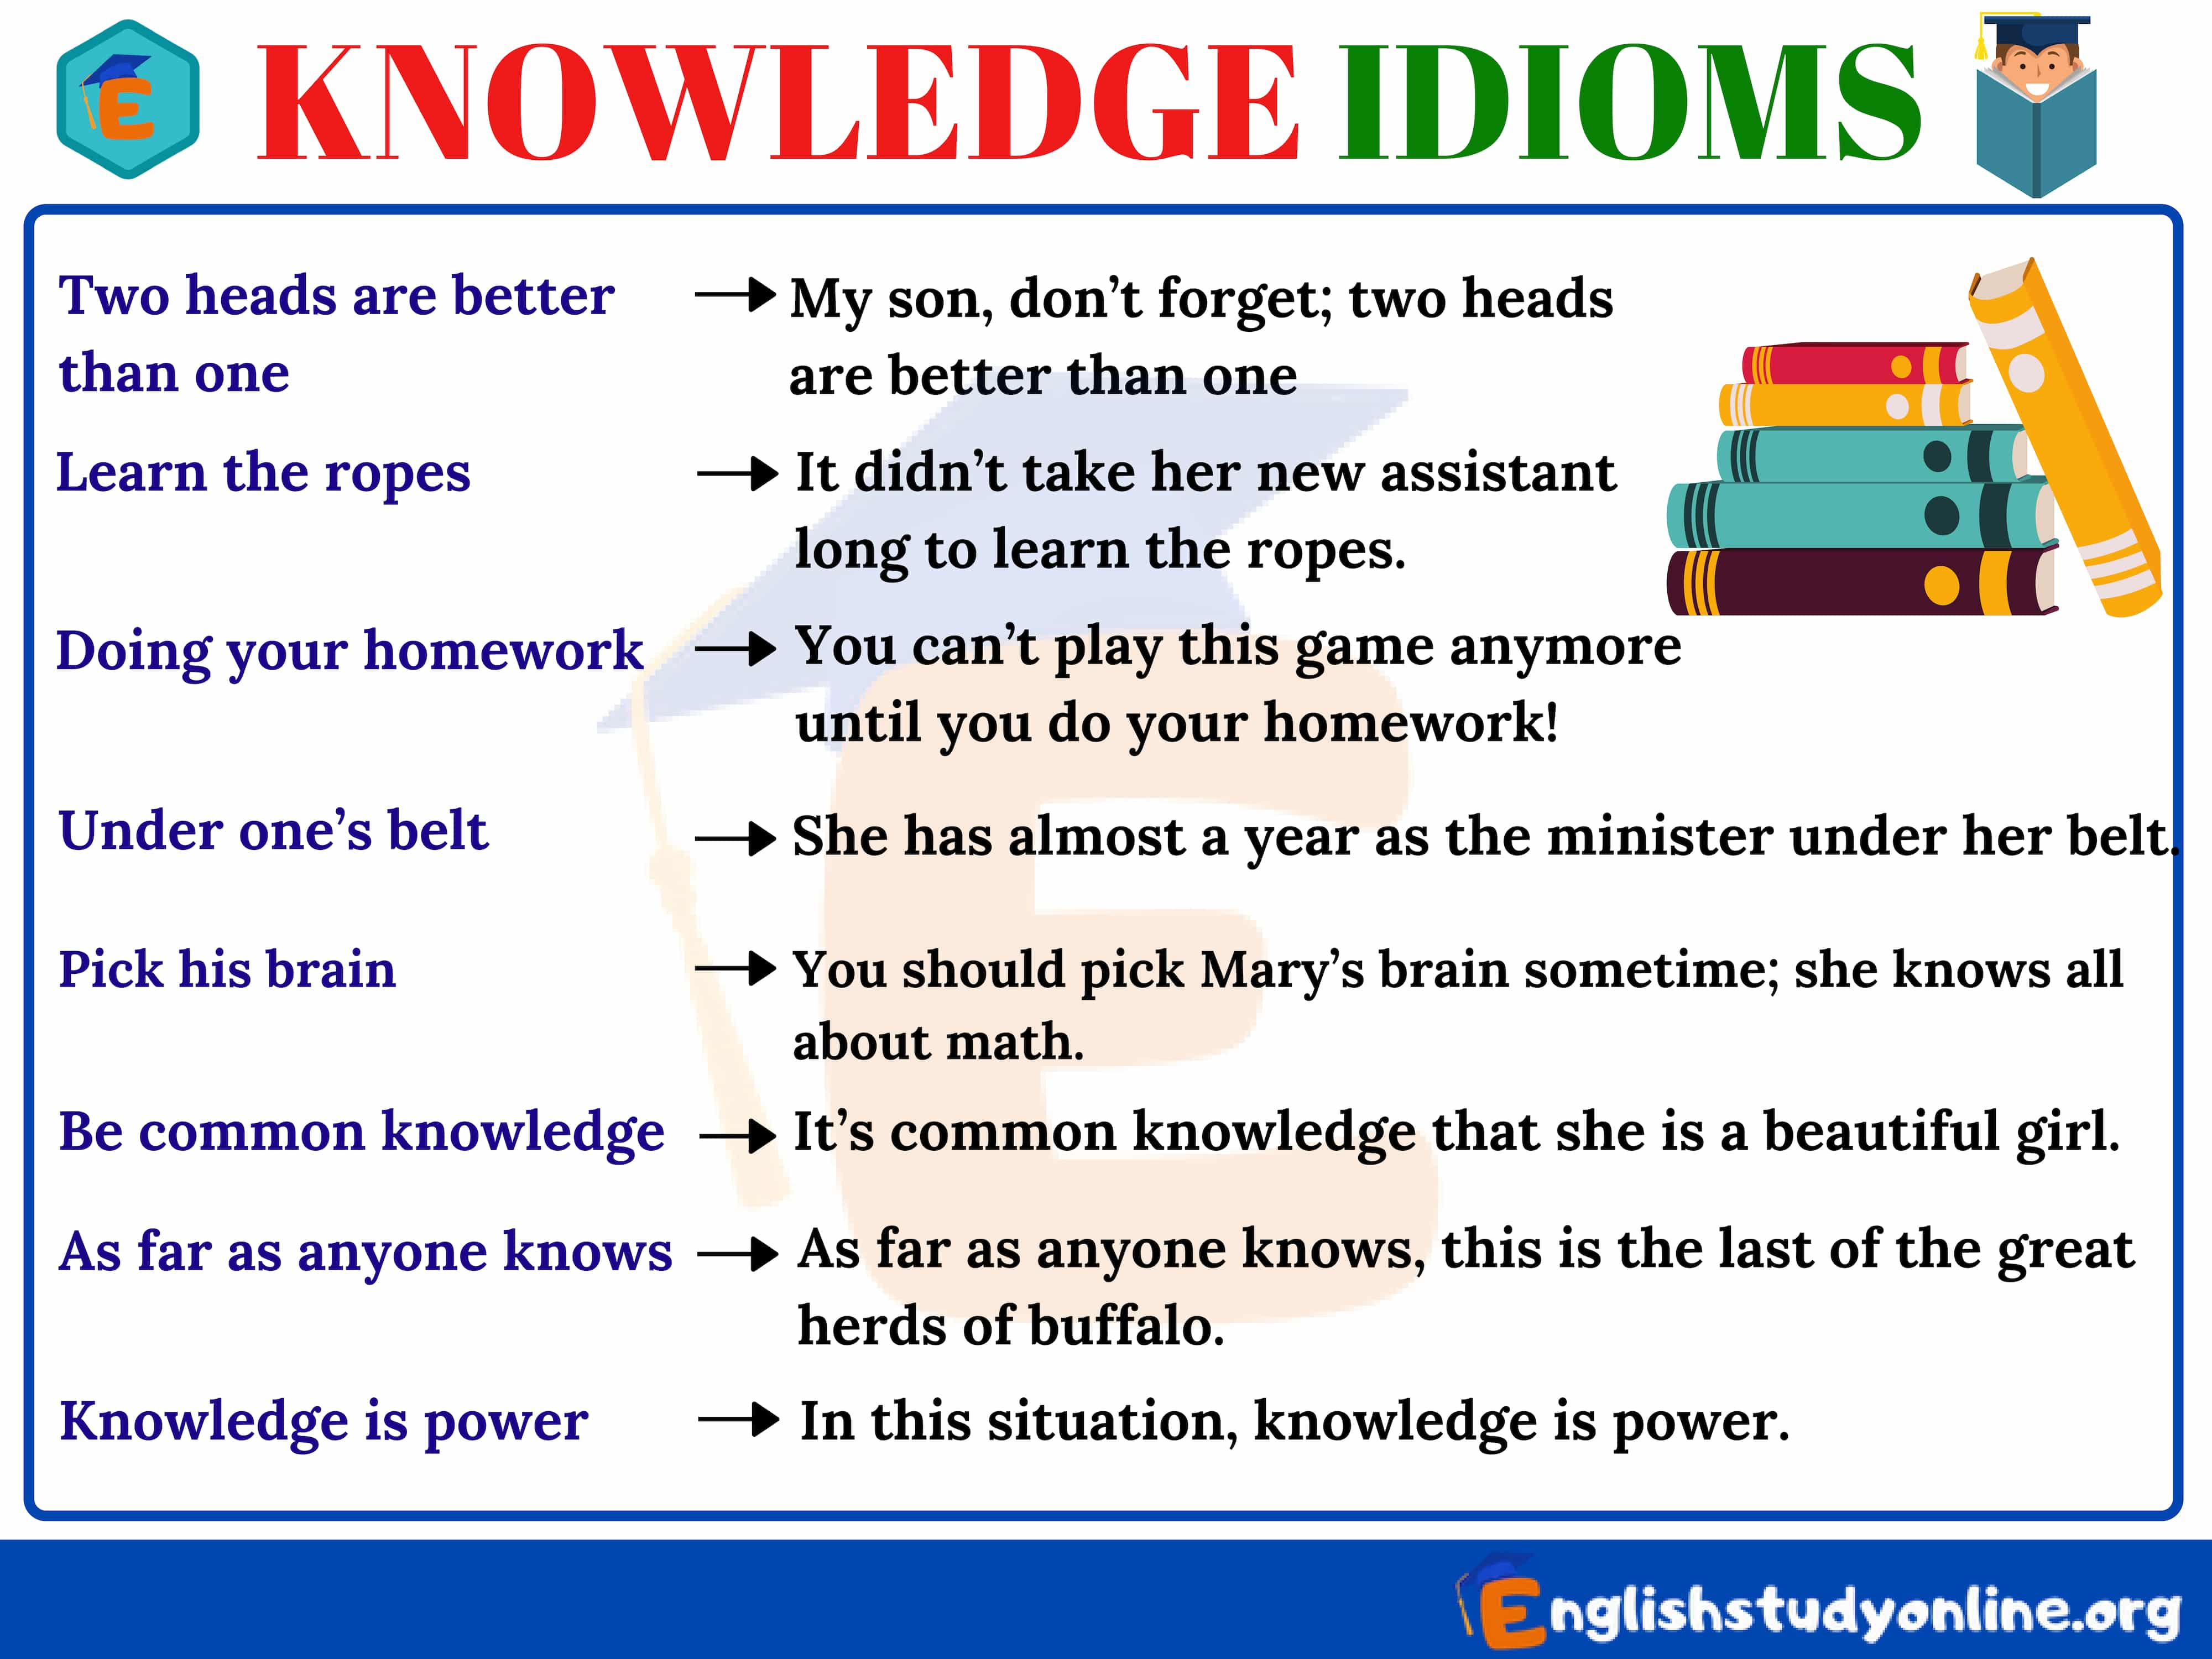 Knowledge Idioms